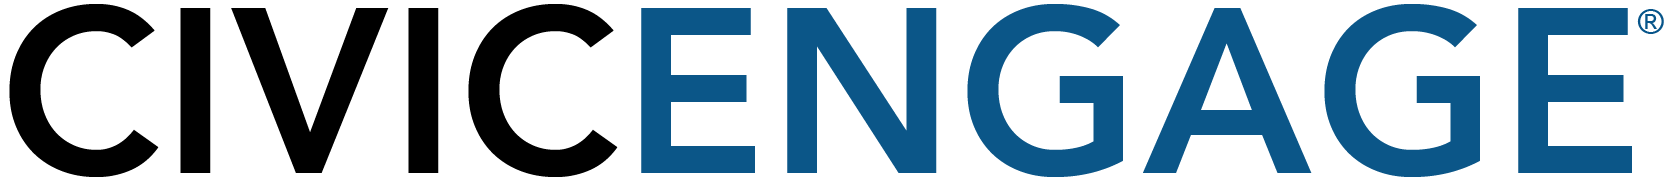 CivicEngage Wordmark.png